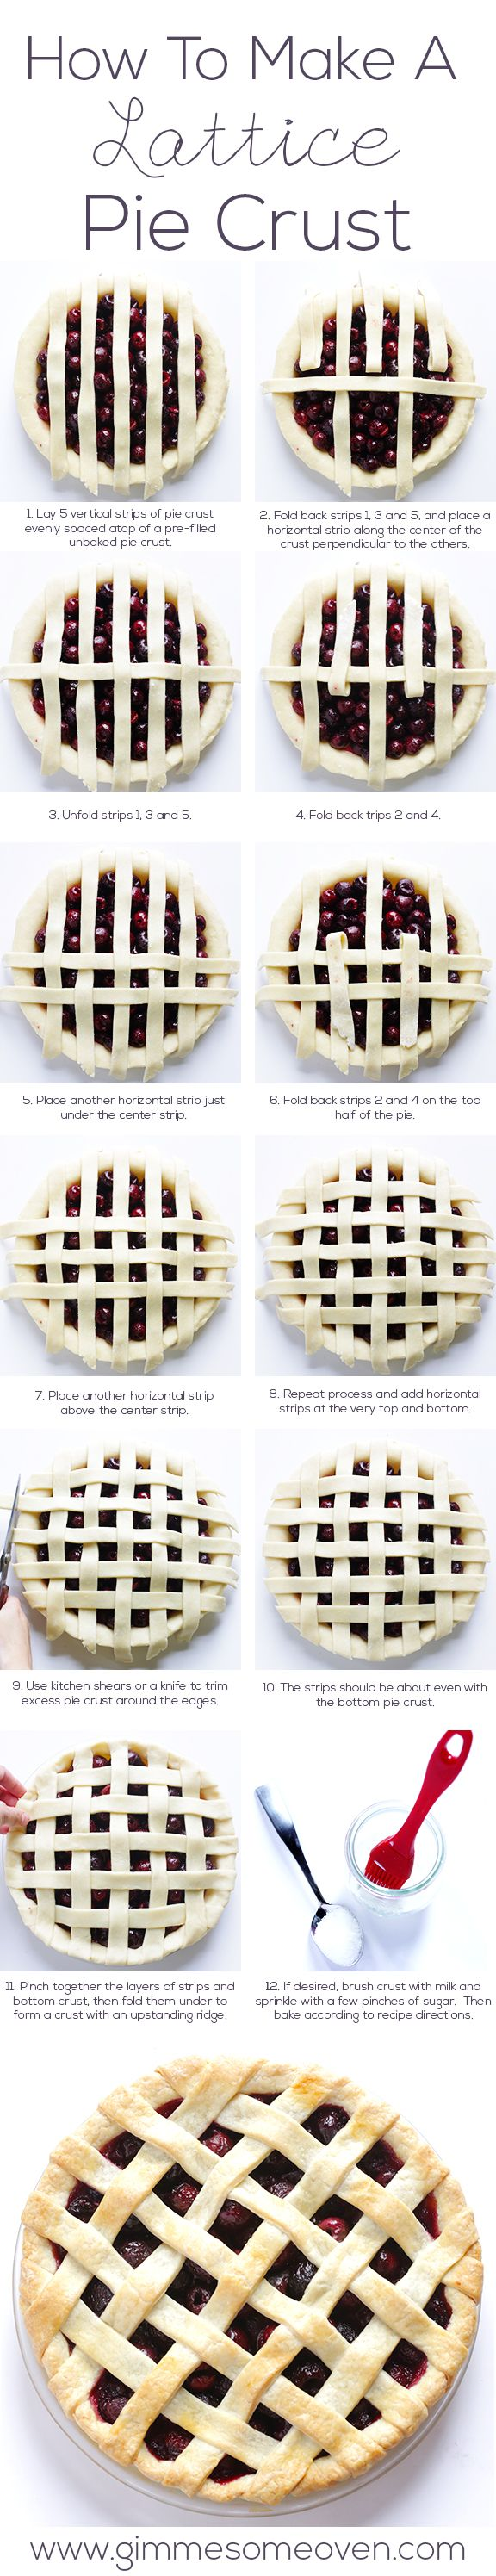 How To Make A Lattice Pie Crust | Great tutorial from gimmesomeoven.com